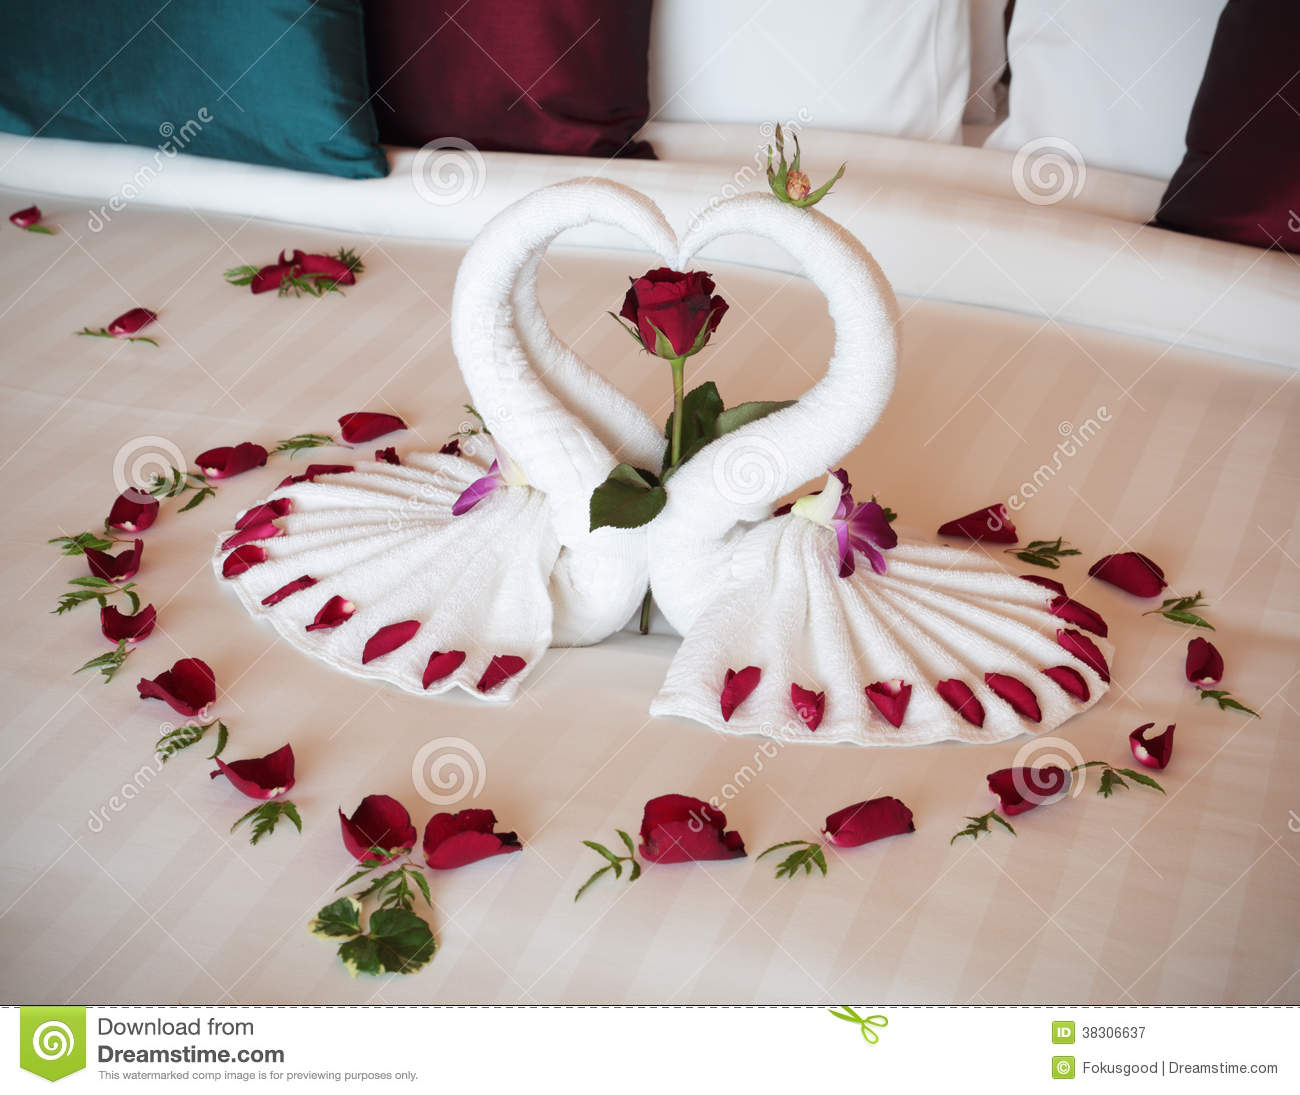 Bedroom Decor Ideas For Newlyweds